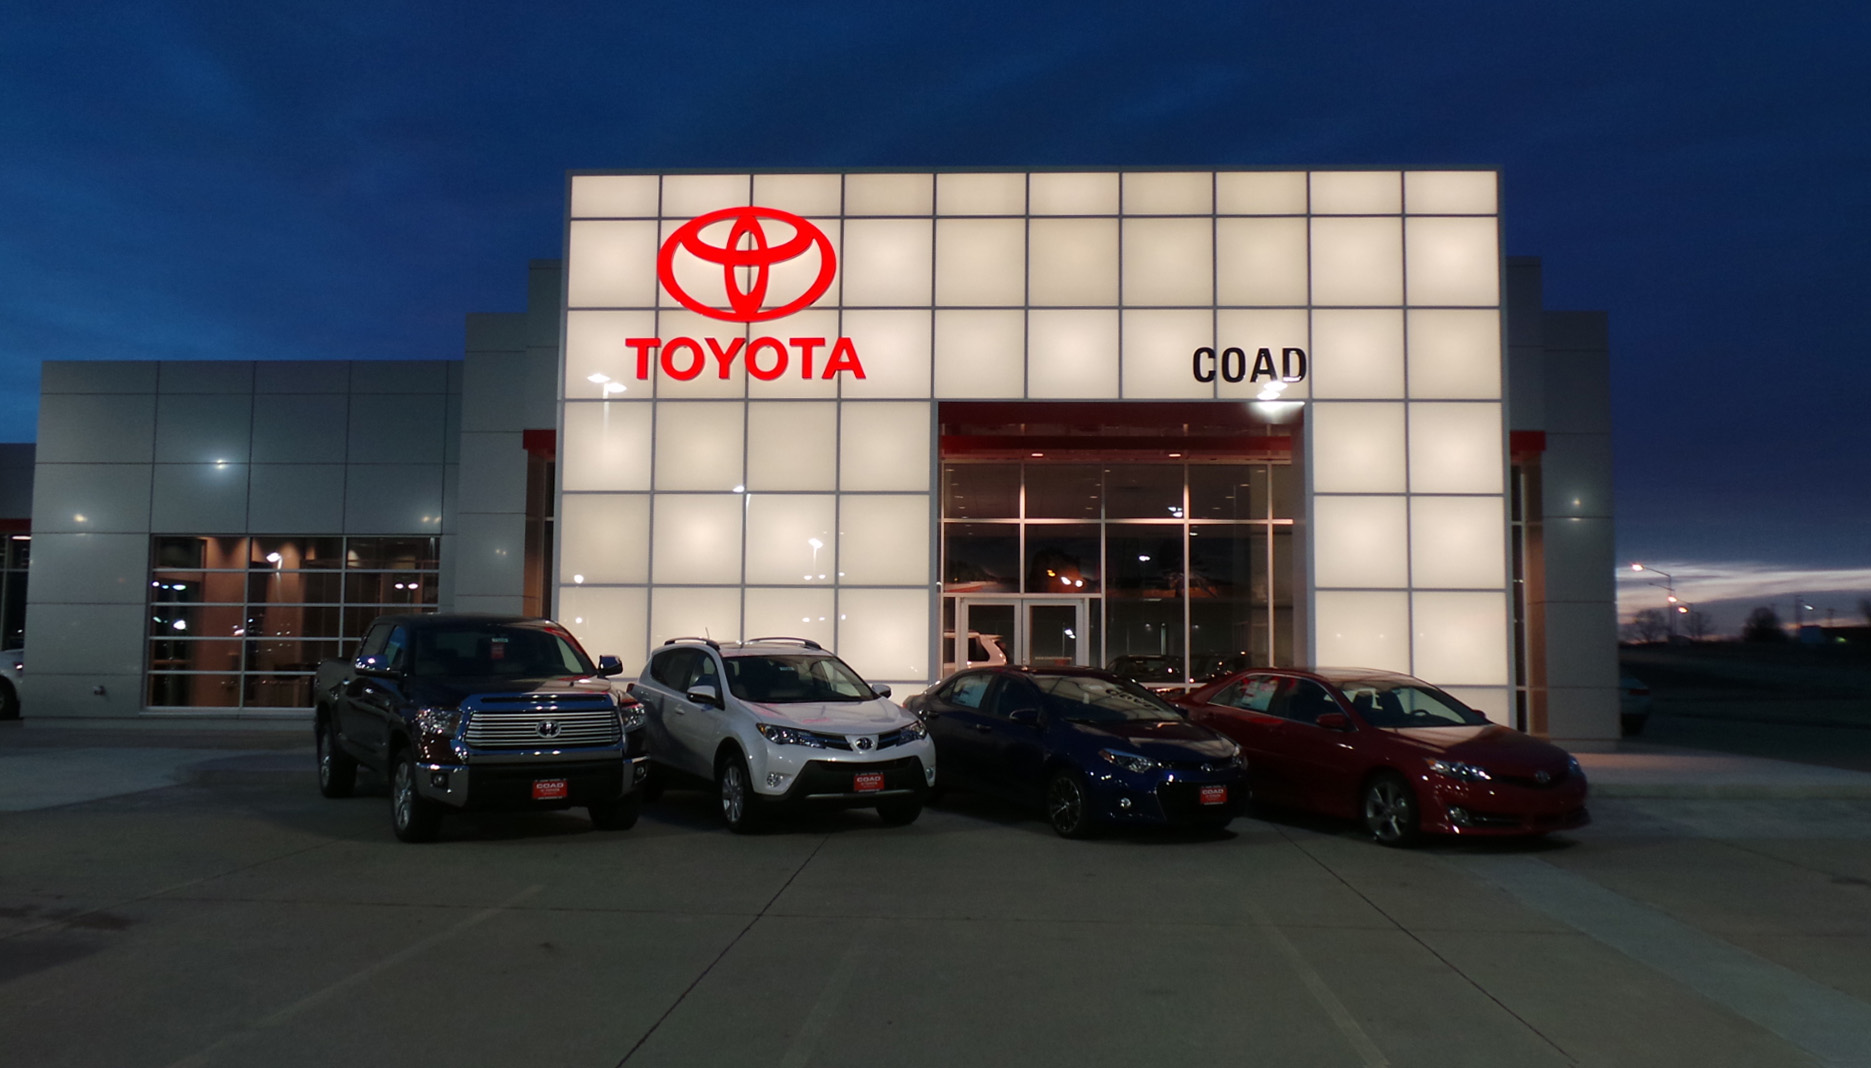 About Us | Coad Toyota In Cape Girardeau, MO